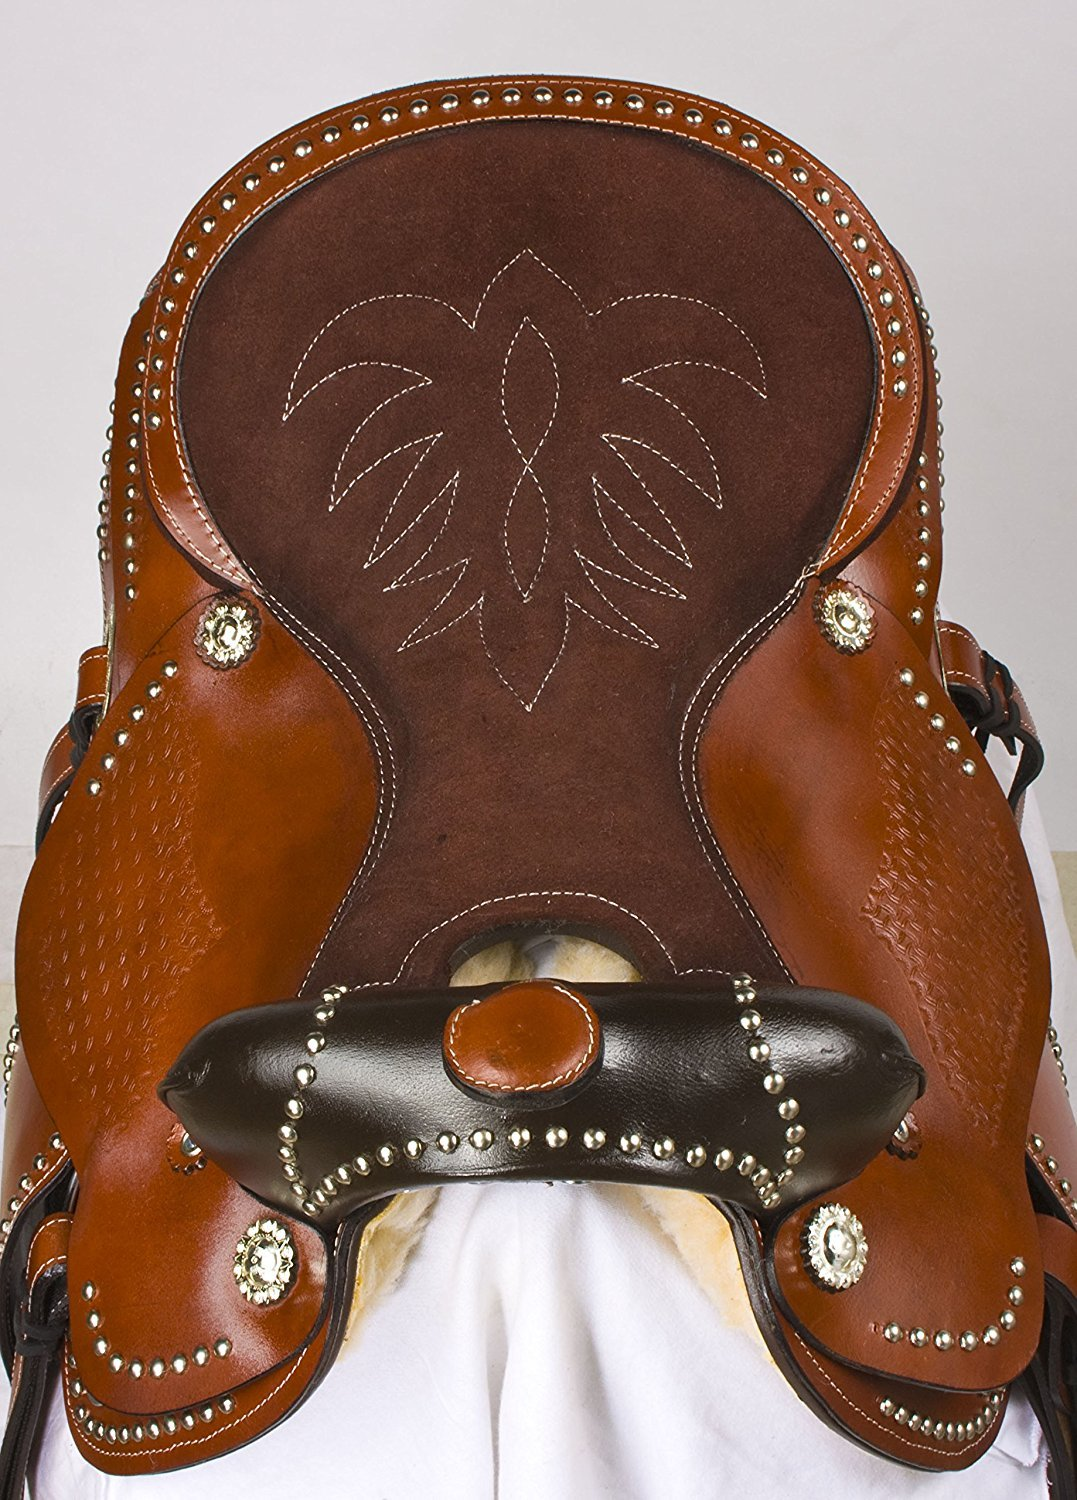 ME Enterprises Premium Leather Western Barrel Racing Horse Saddle Tack Size 14 to 18 Inches Seat Available Get Matching Leather Headstall Reins Breast Collar